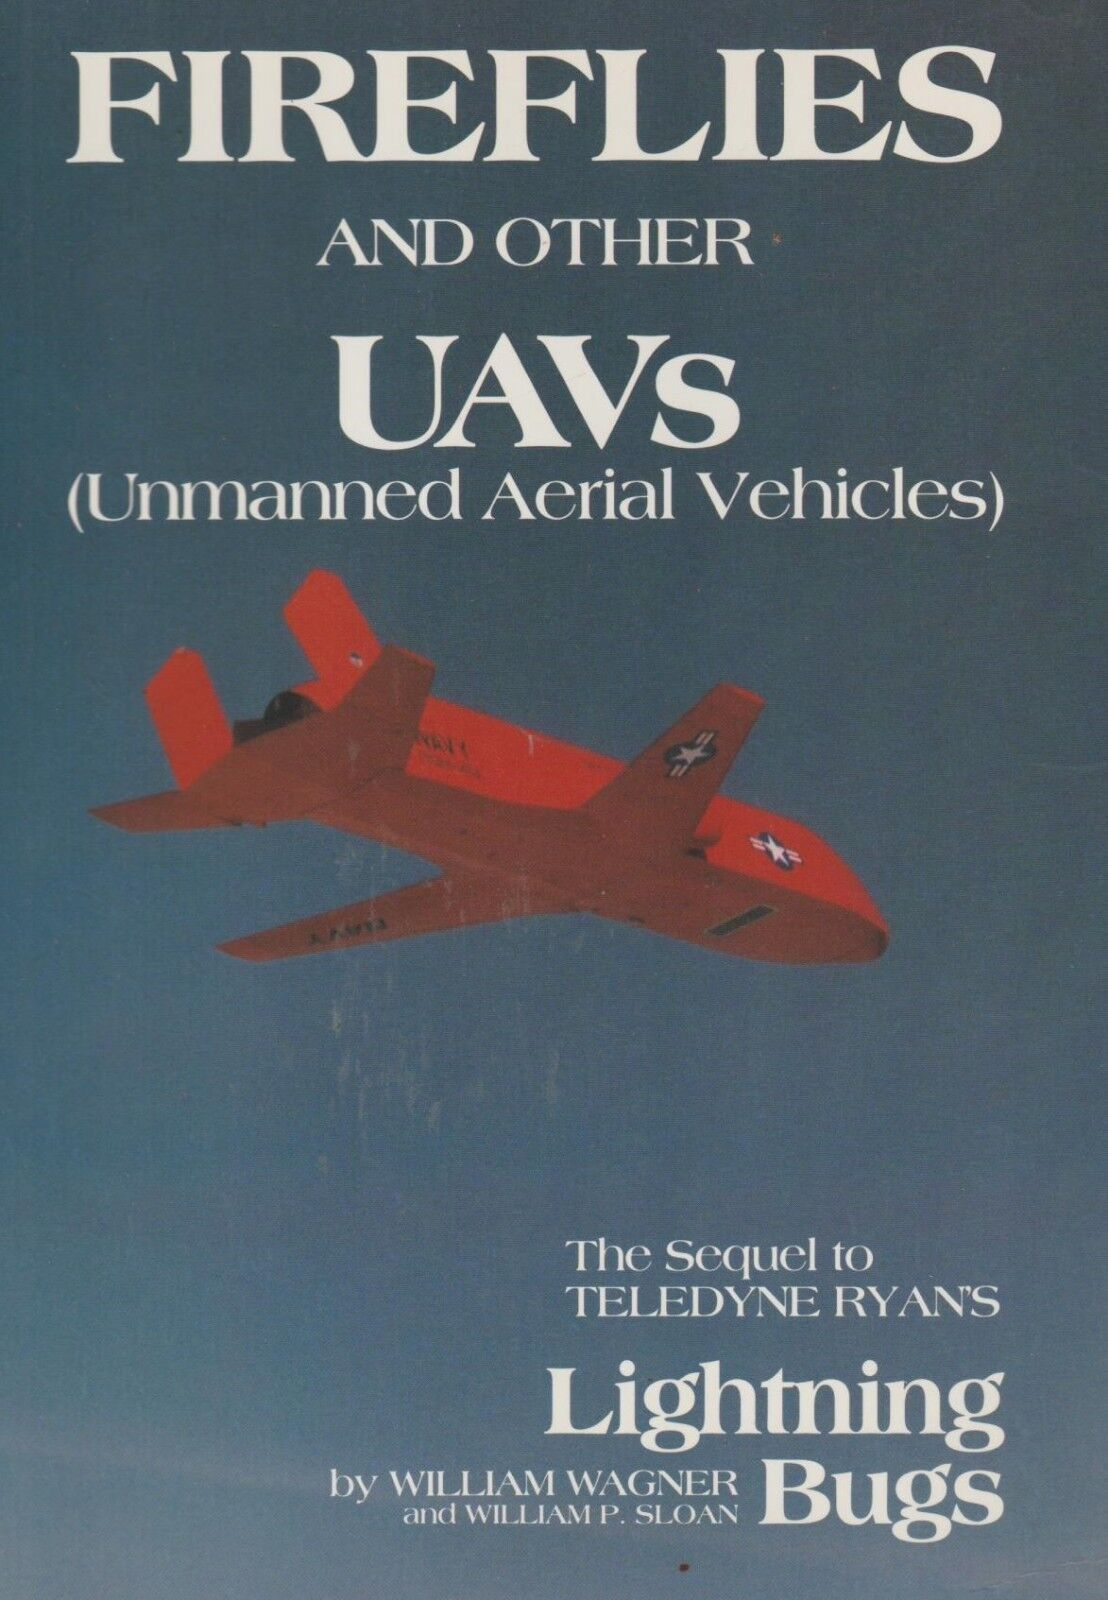 Fireflies and Other Unmanned Aerial Vehicles  by W. Wagner